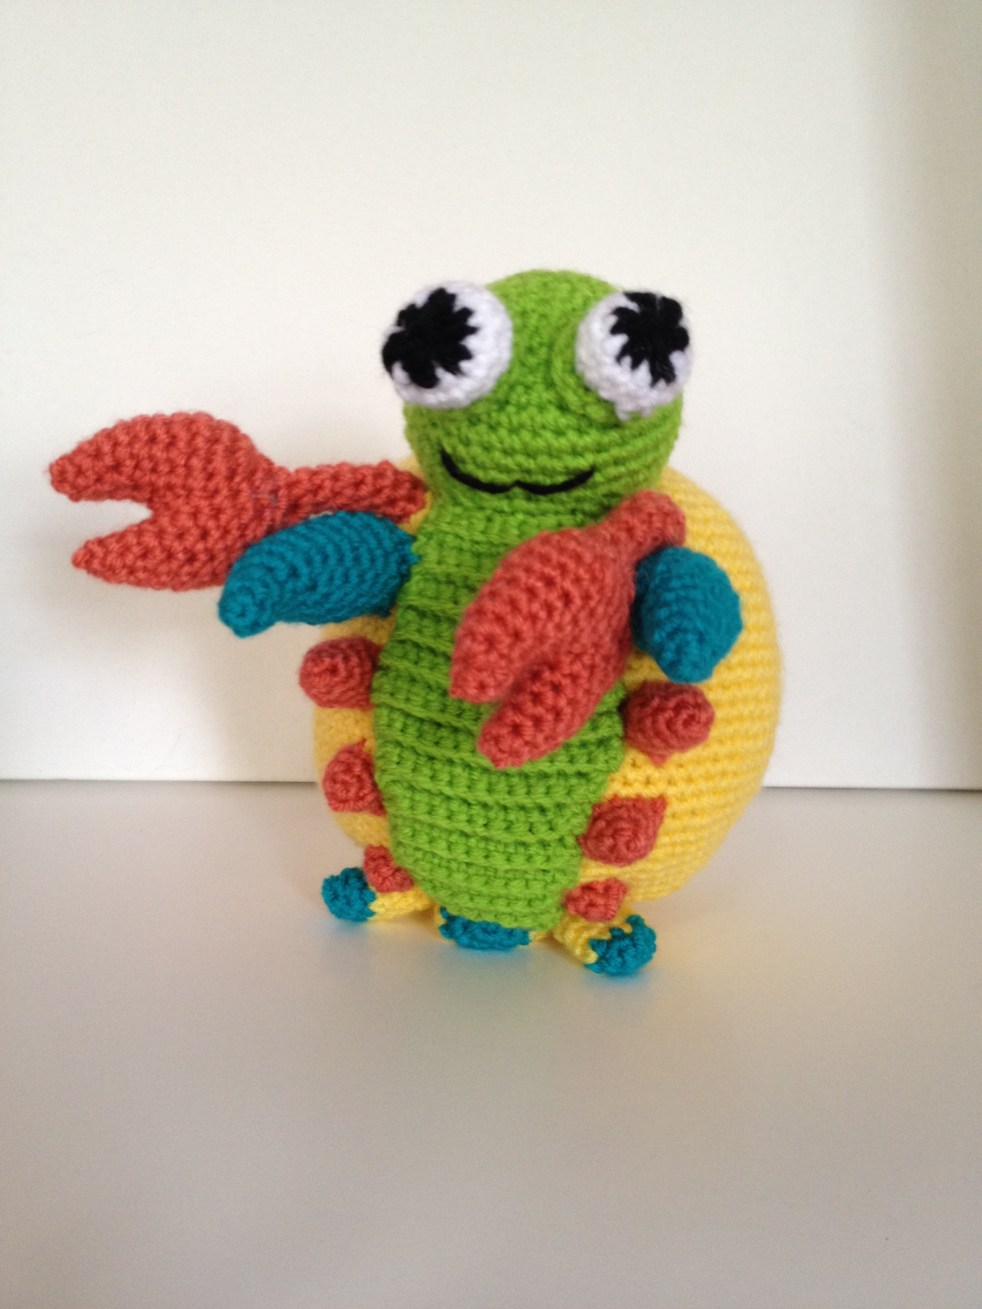 Crochet mantis shrimp pattern